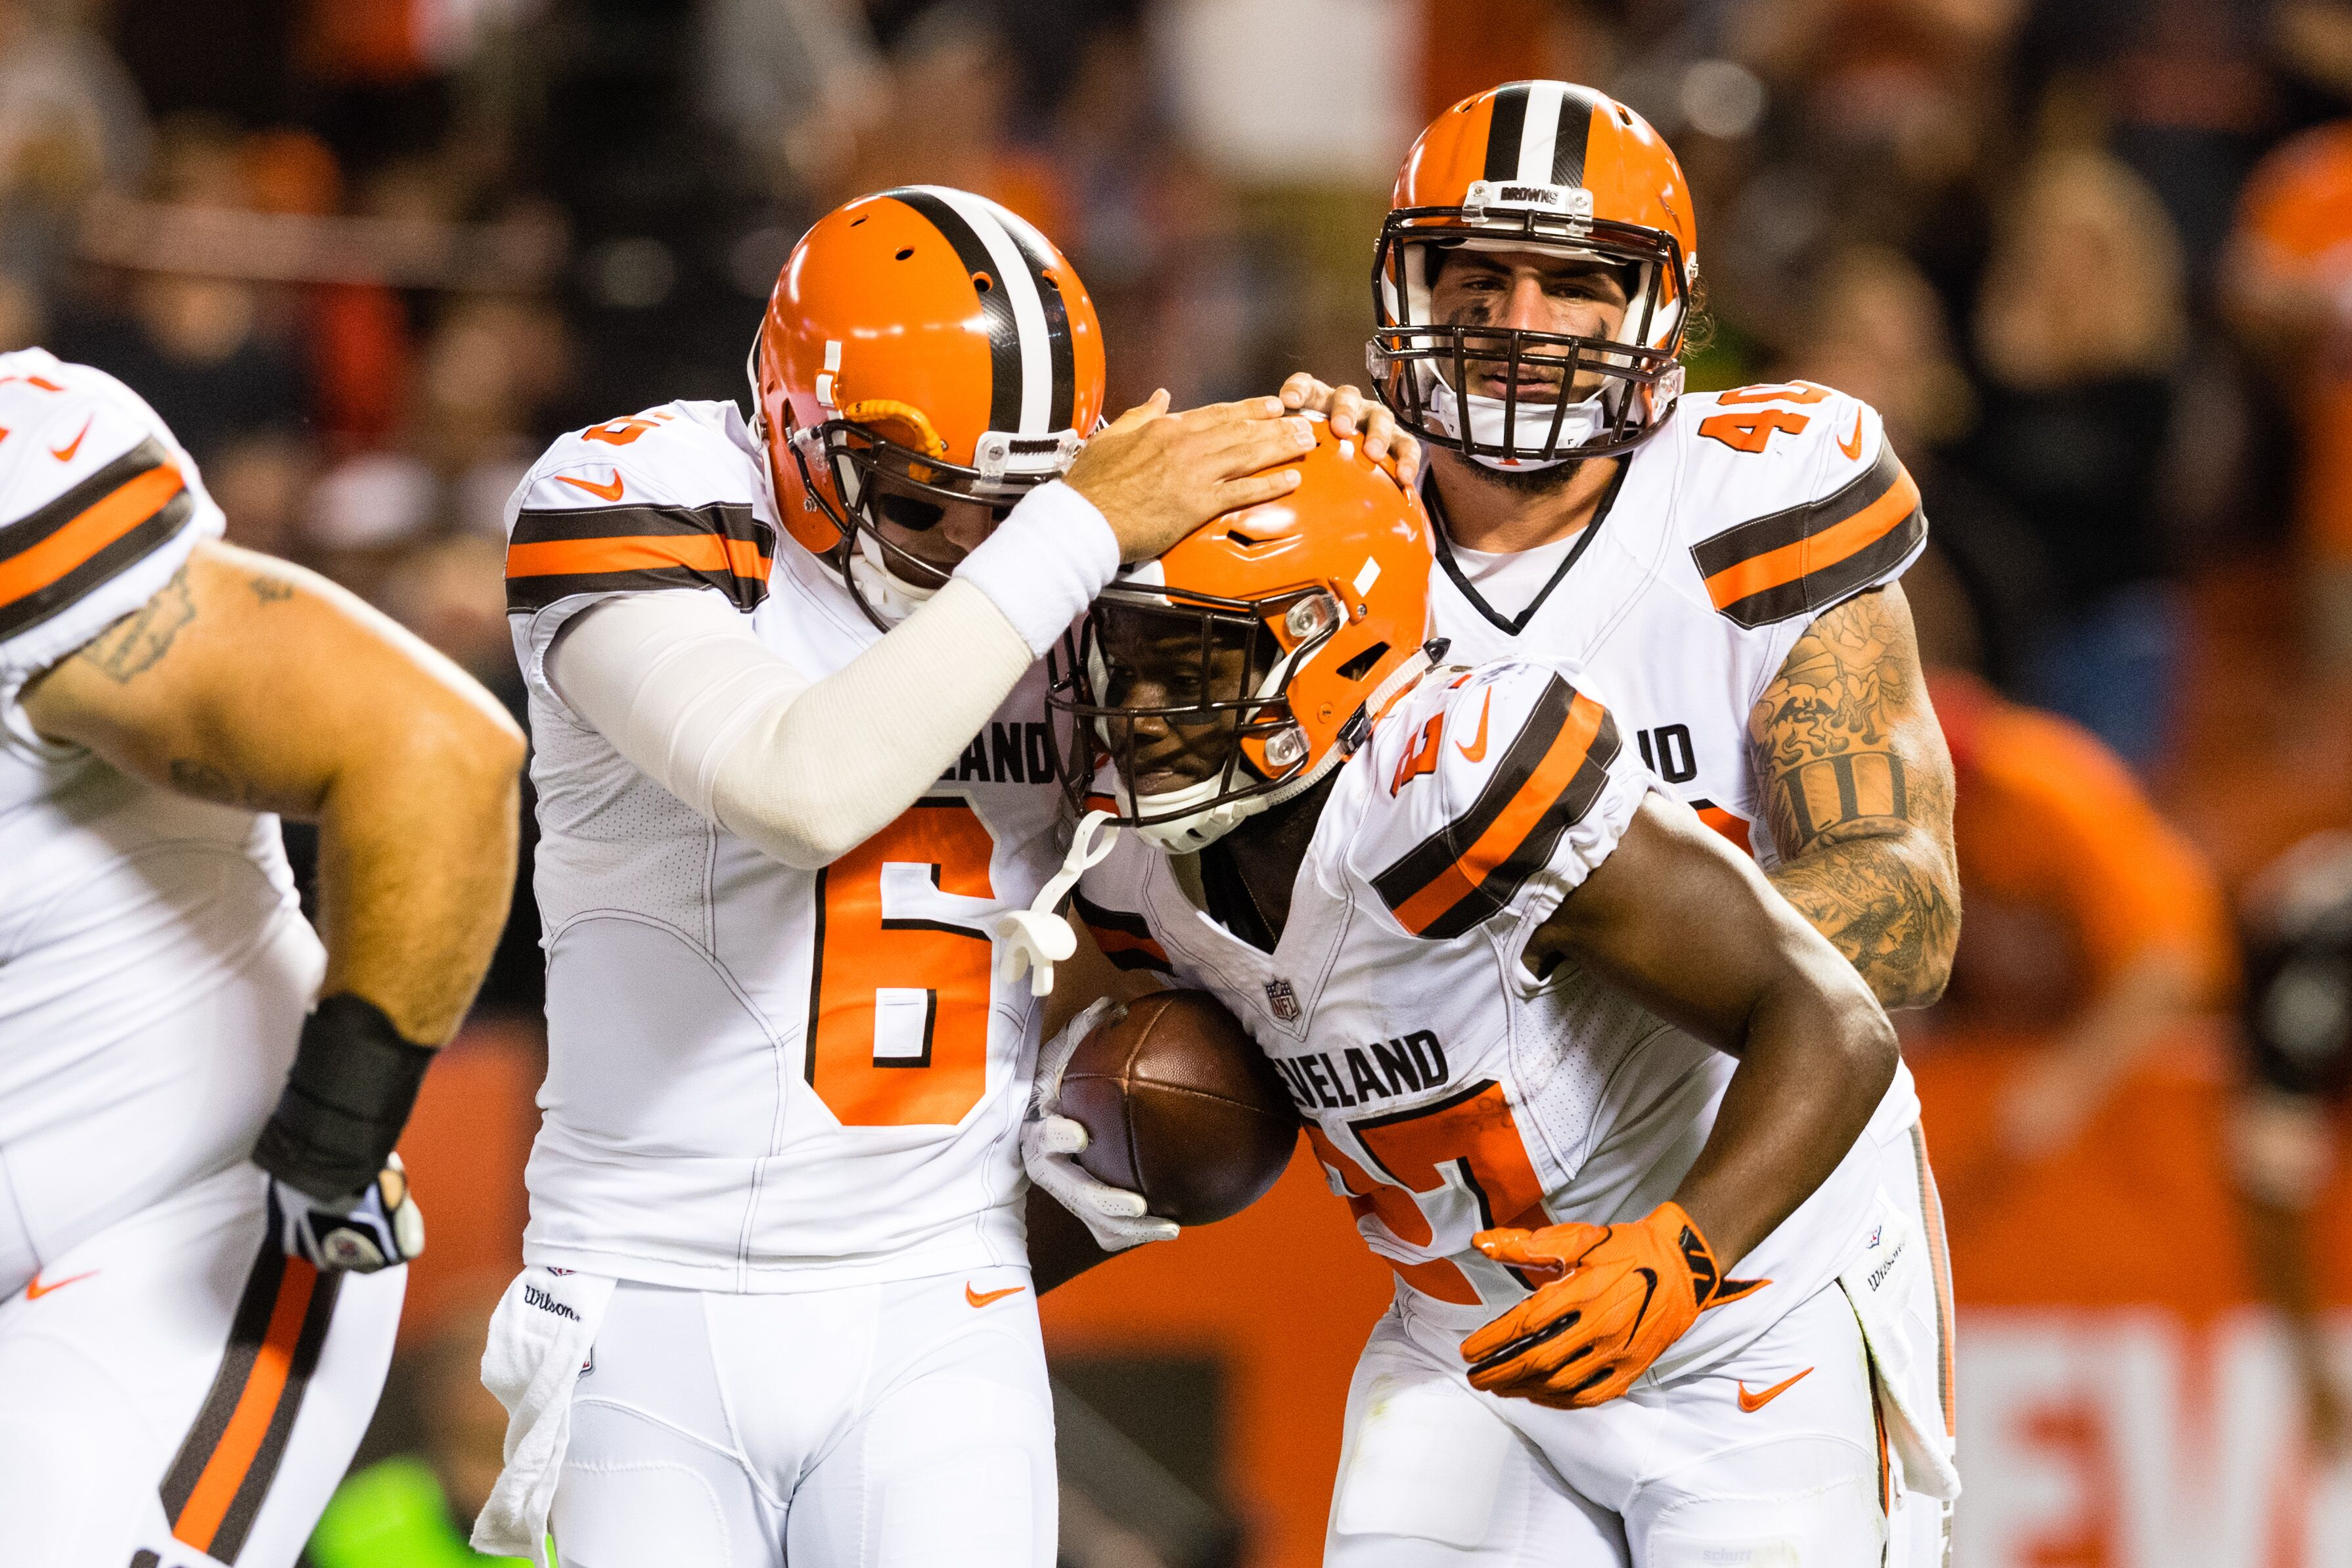 The Browns 2018 regularseason schedule is tough with matchups against the AFC West and NFC South We break down Clevelands schedule and try to find